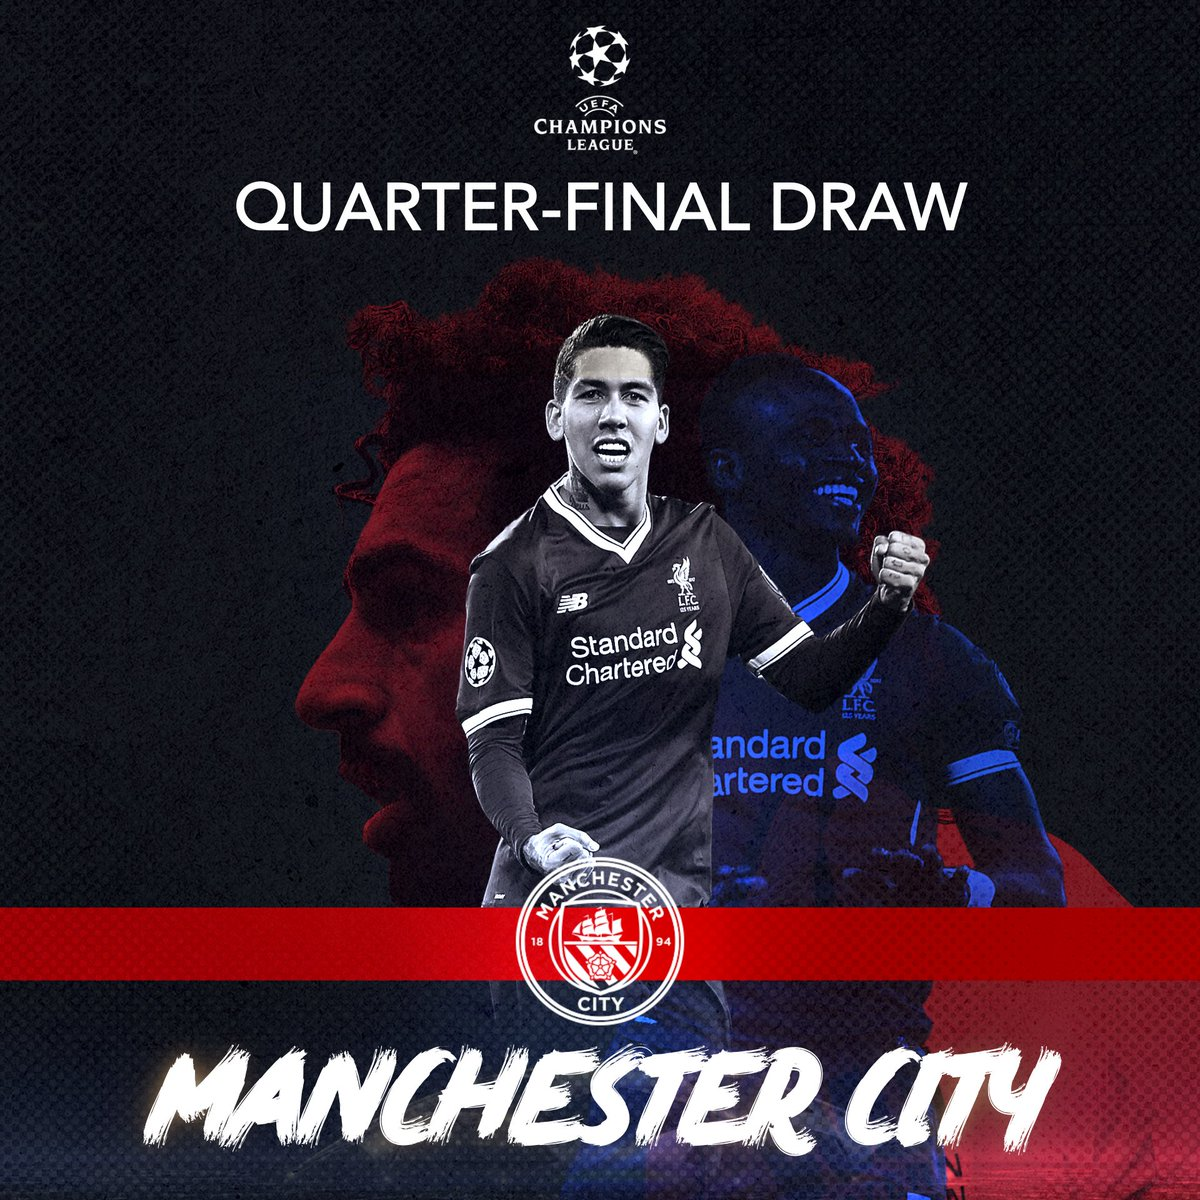 #Ucldraw Latest News Trends Updates Images - LFC